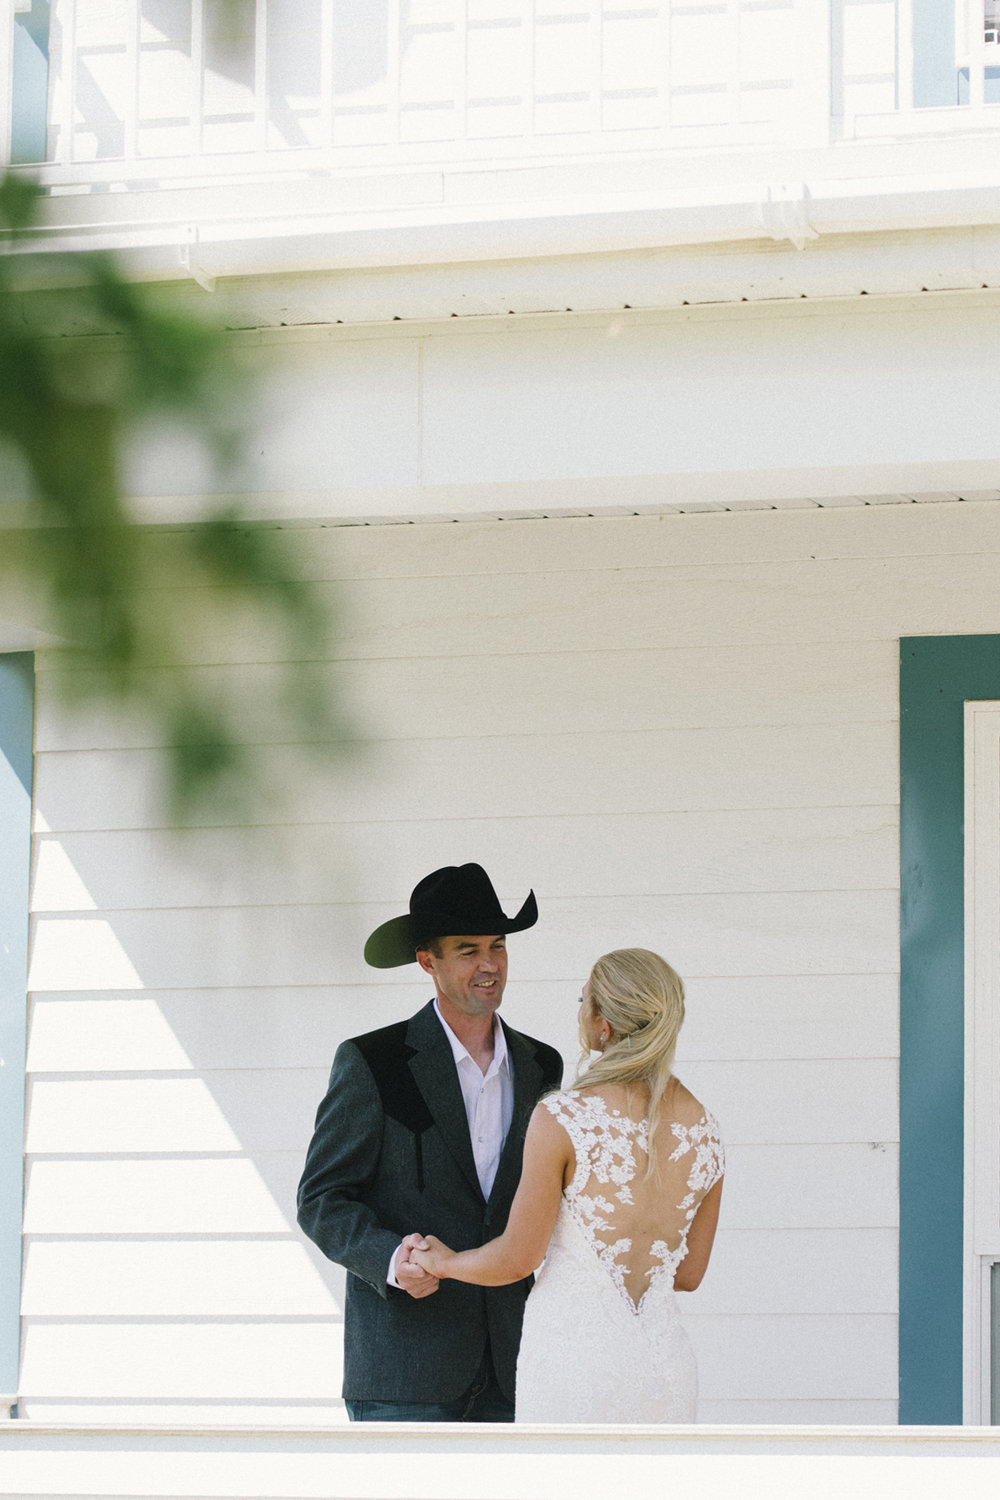 Erica Lind + Jeff Heim Wedding_Rustic Wedding_Montana Wedding_Kelsey Lane Photography-4158-3 copy.jpg